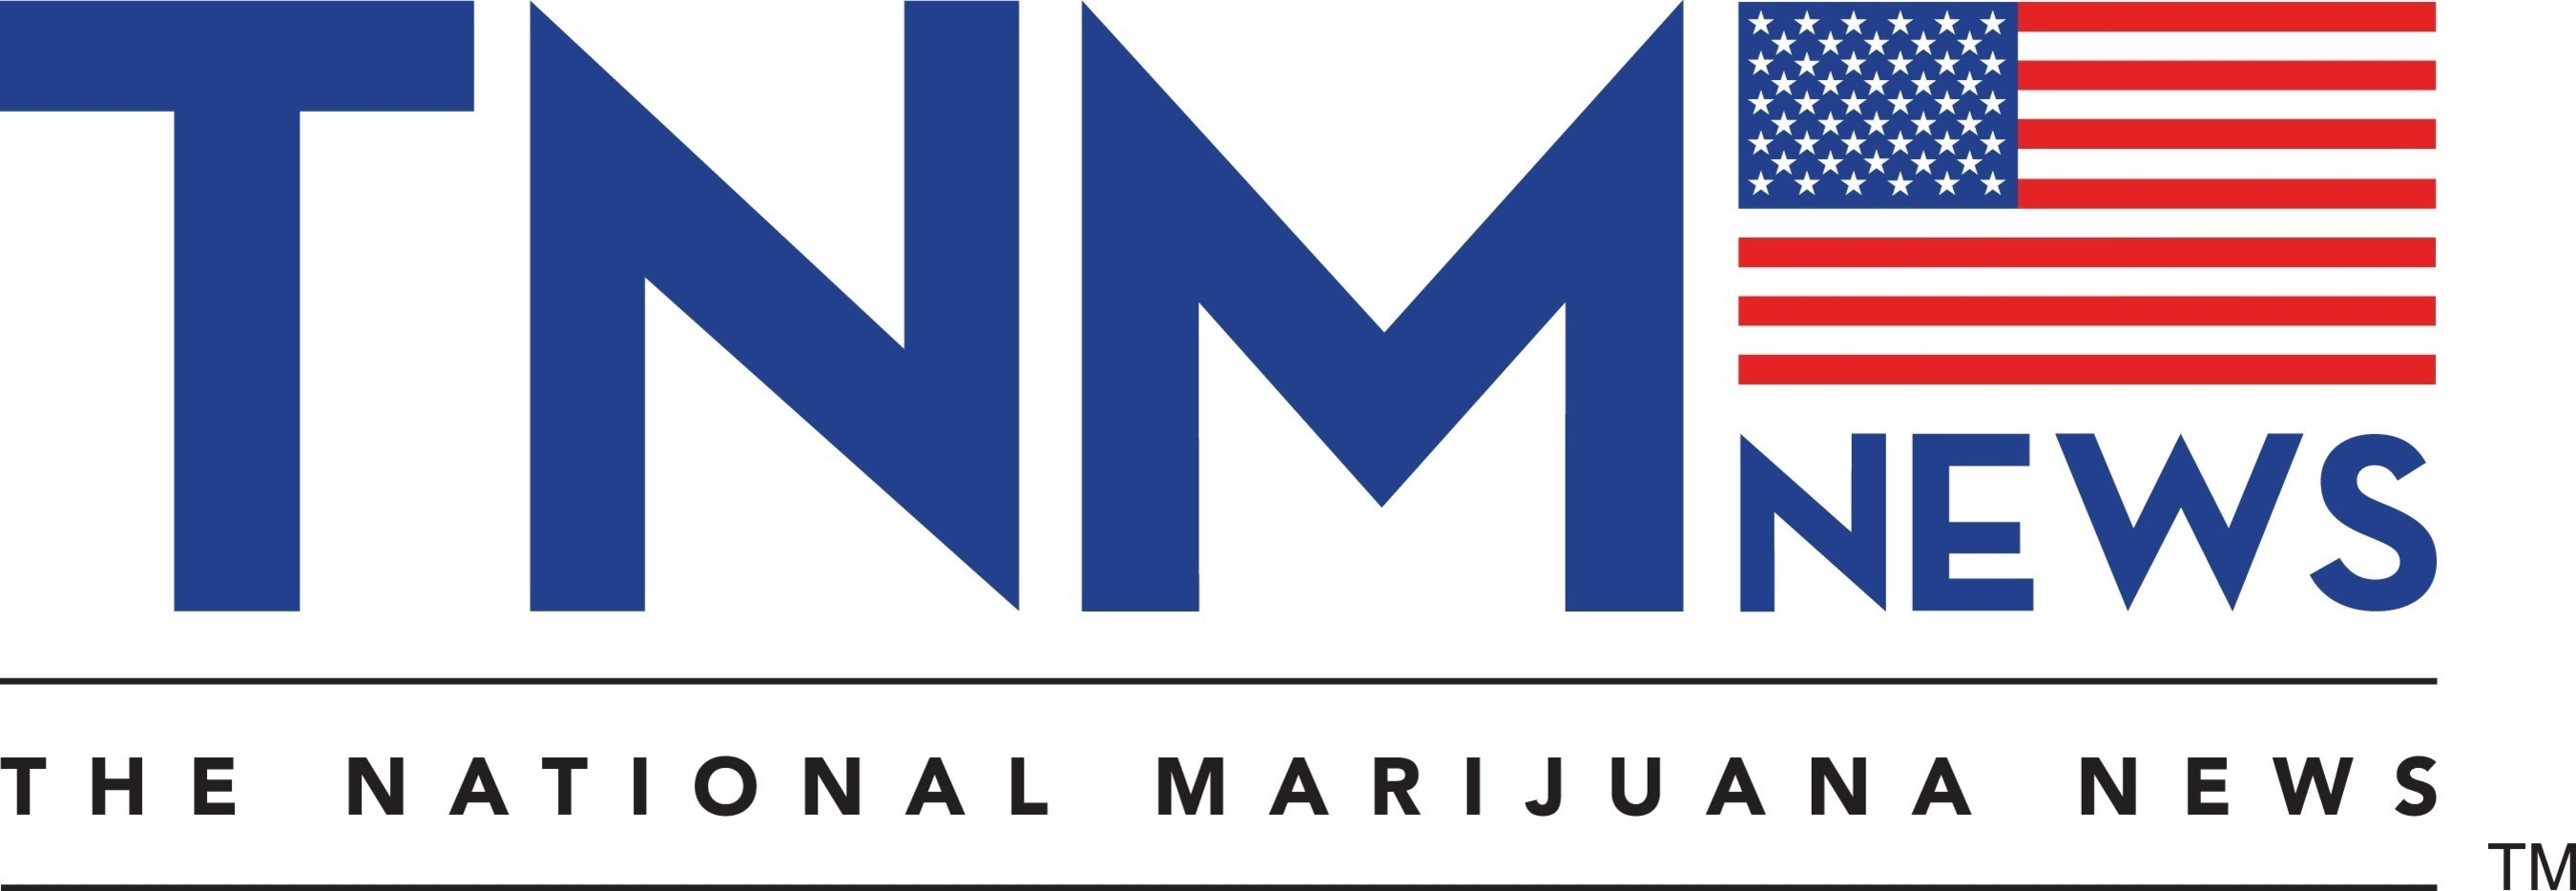 The times are changing, and TNMNews was founded to help make sense of it all. Medical marijuana is now legal in twenty-two states and the District of Columbia, making this subject one that needs to be reported on and discussed from all angles in a completely unbiased approach. We have assembled some of the industry's leading luminaries to bring this important, relevant, and controversial topic to you from all of the subjects that it touches. TNMNews will have segments that feature medicine, politics, science, business, lifestyle, people's lives and much, much more. Visit thenationalmarijuananews.com to learn more. (PRNewsFoto/The National Marijuana News)